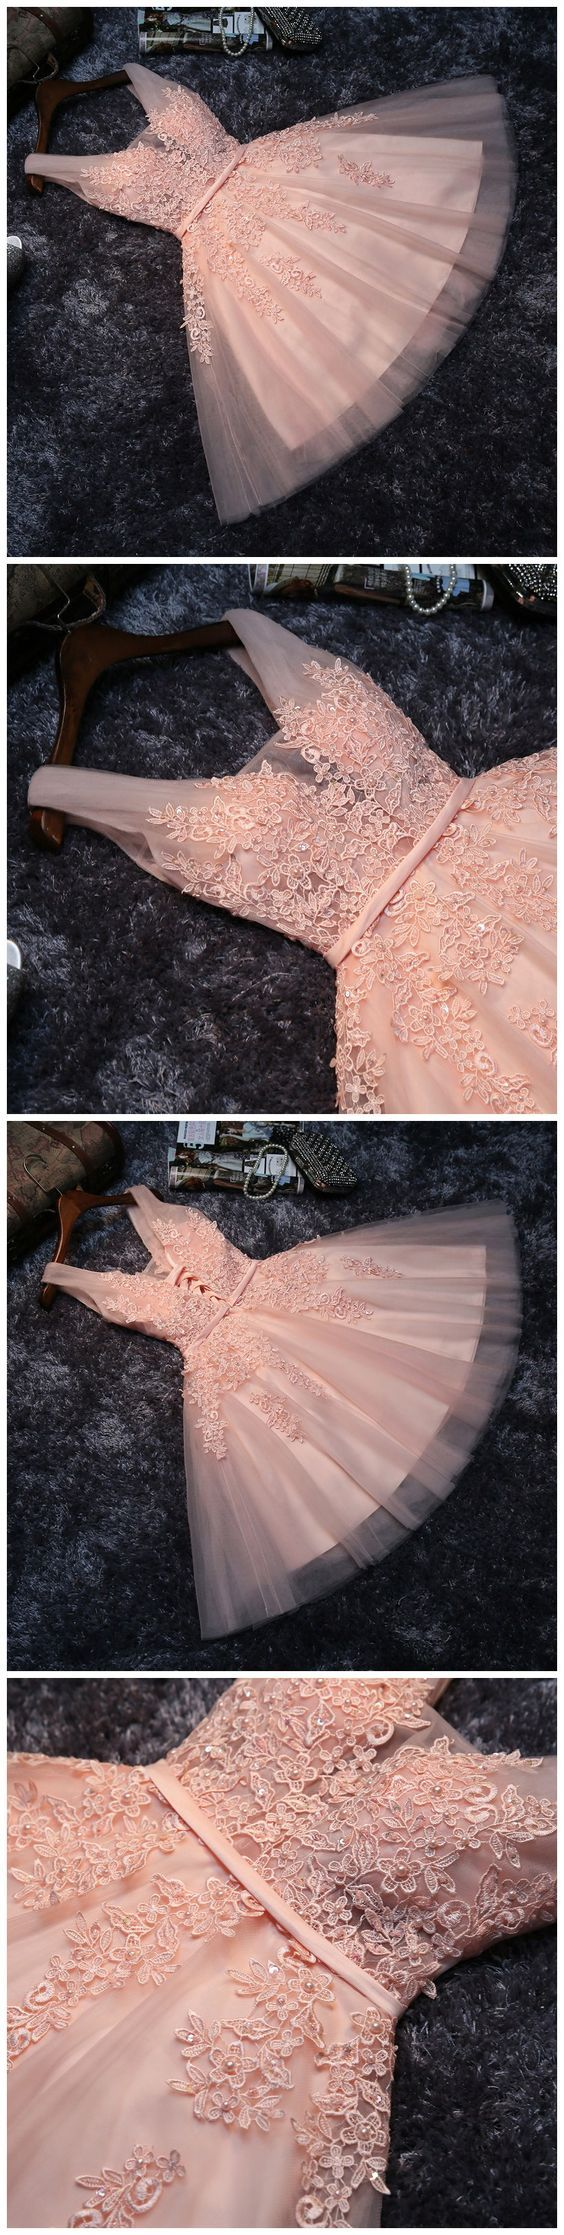 Homecoming dresses,cute dress,v neck homecoming dresses,pink homecoming dress,blush pink homecoming dress,short prom dress,prom dress